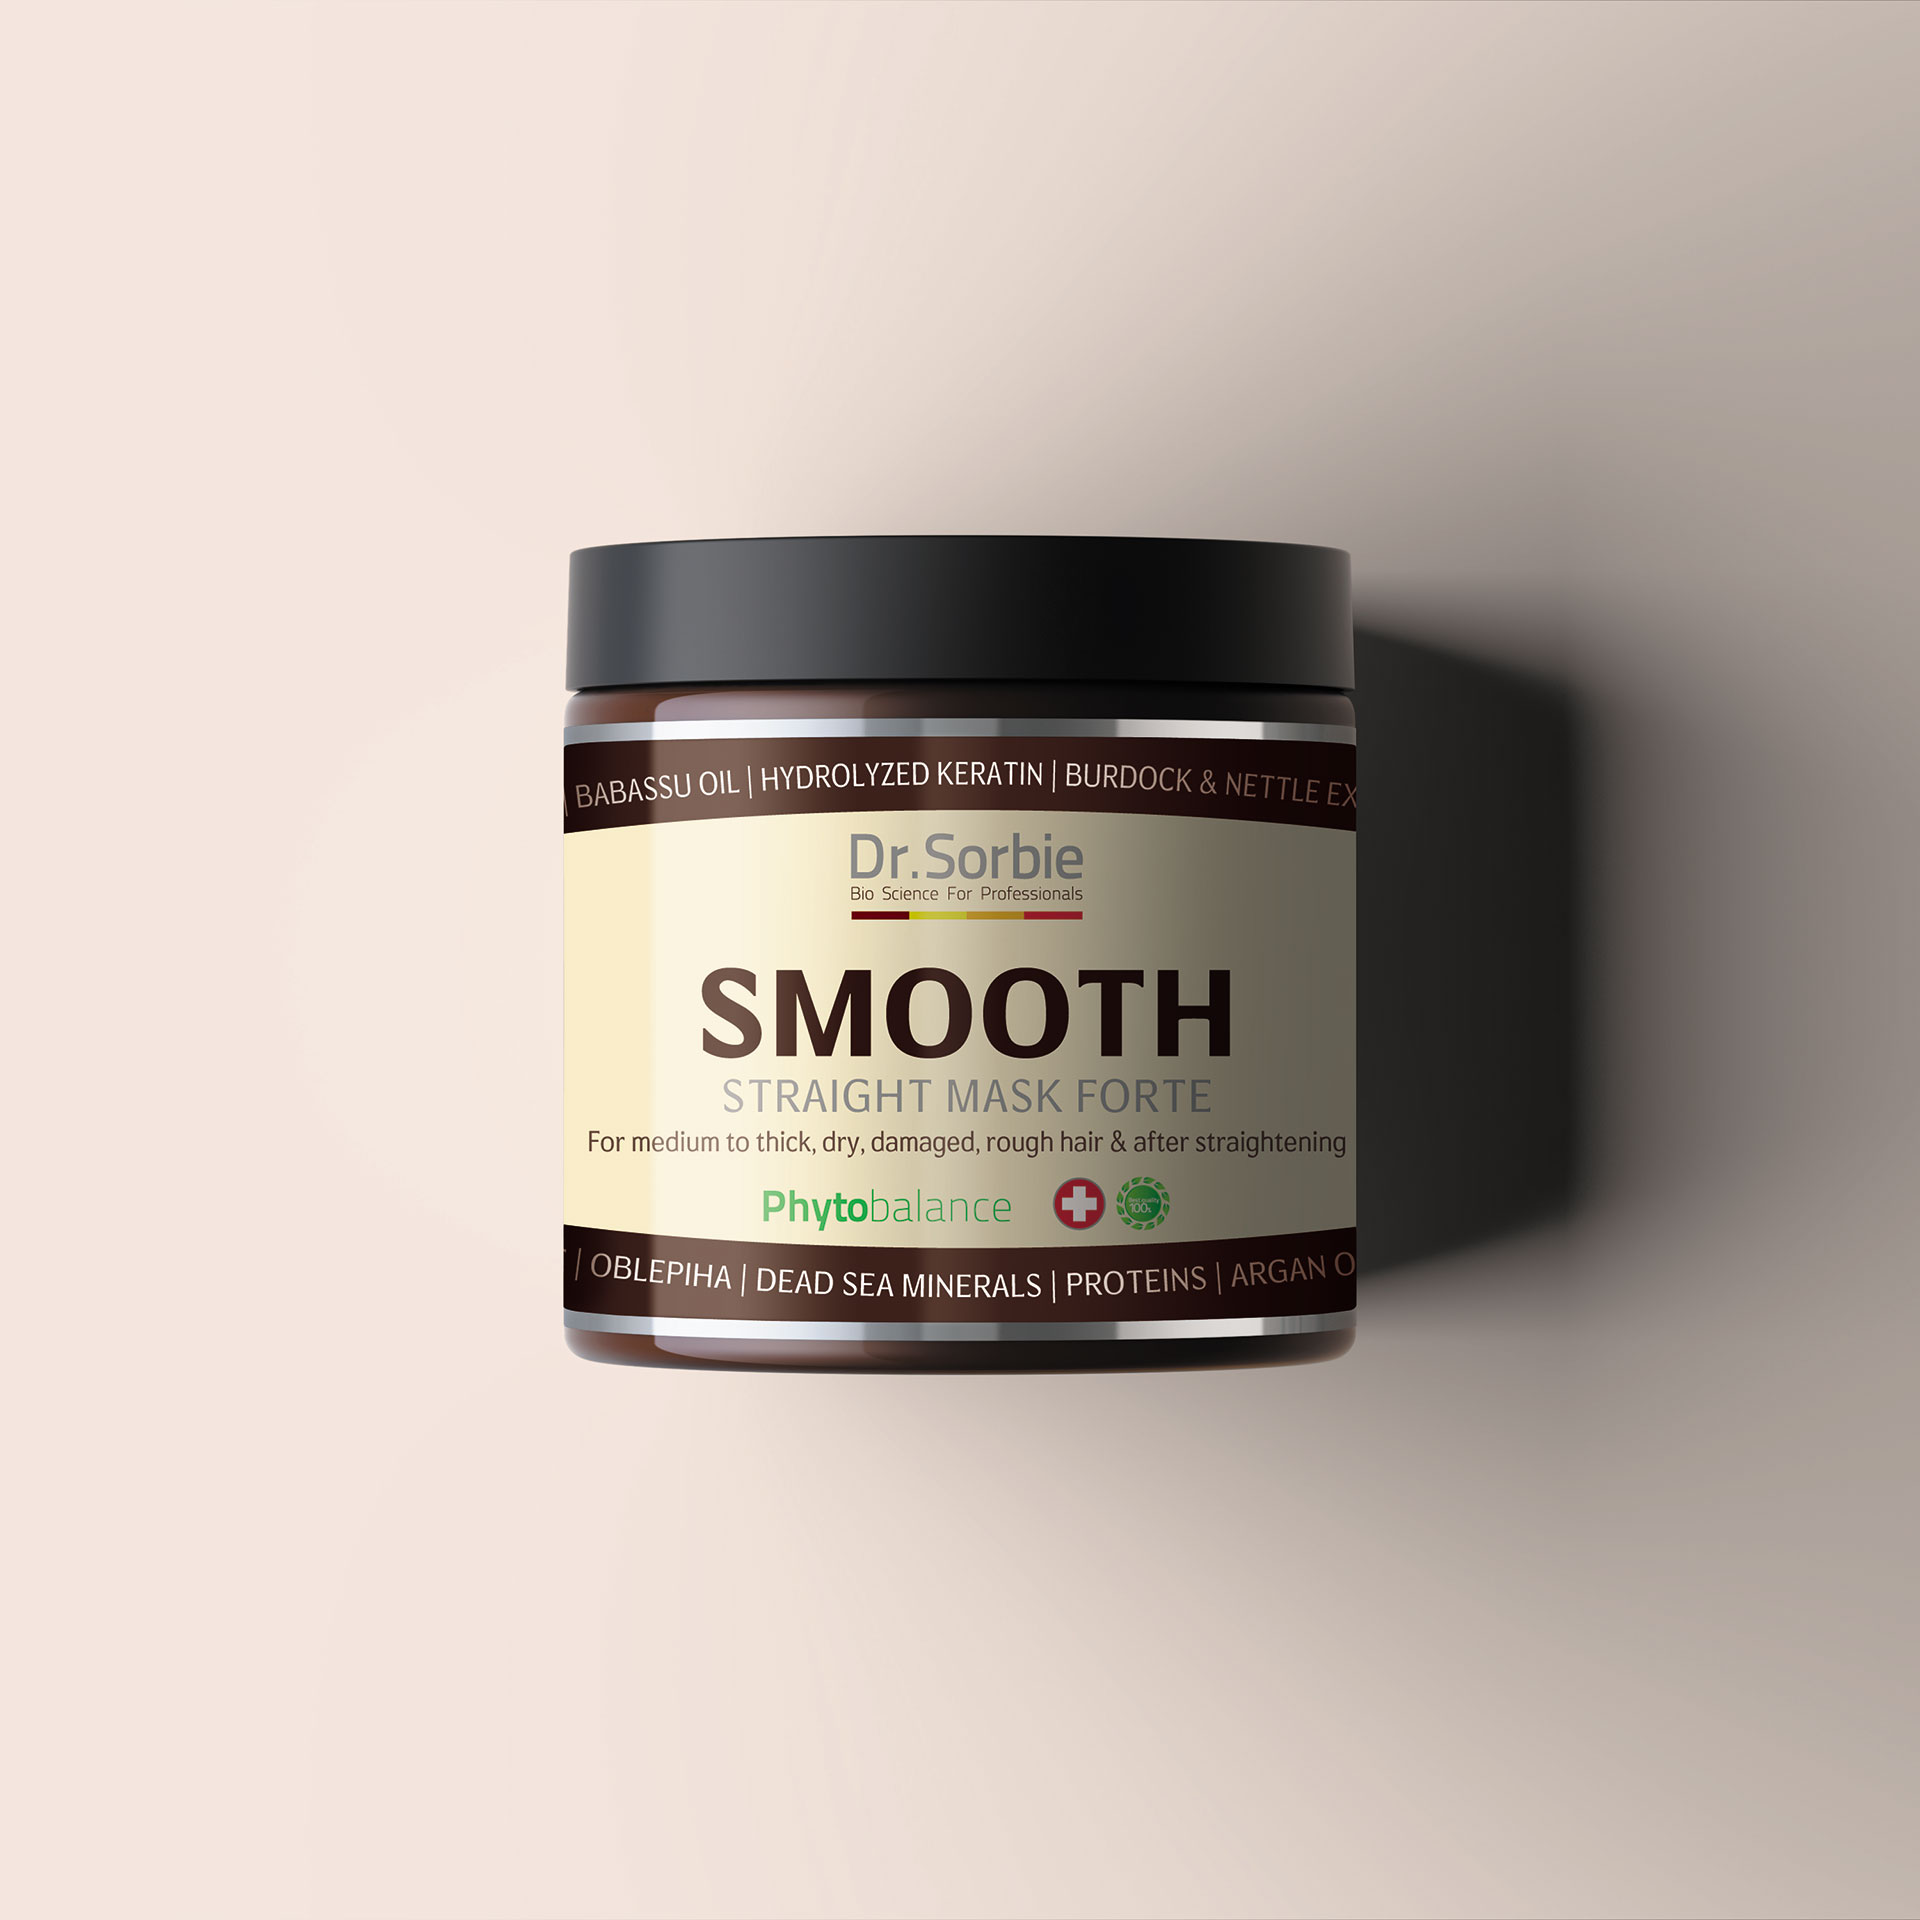 Smooth & straight mask by Dr. Sorbie